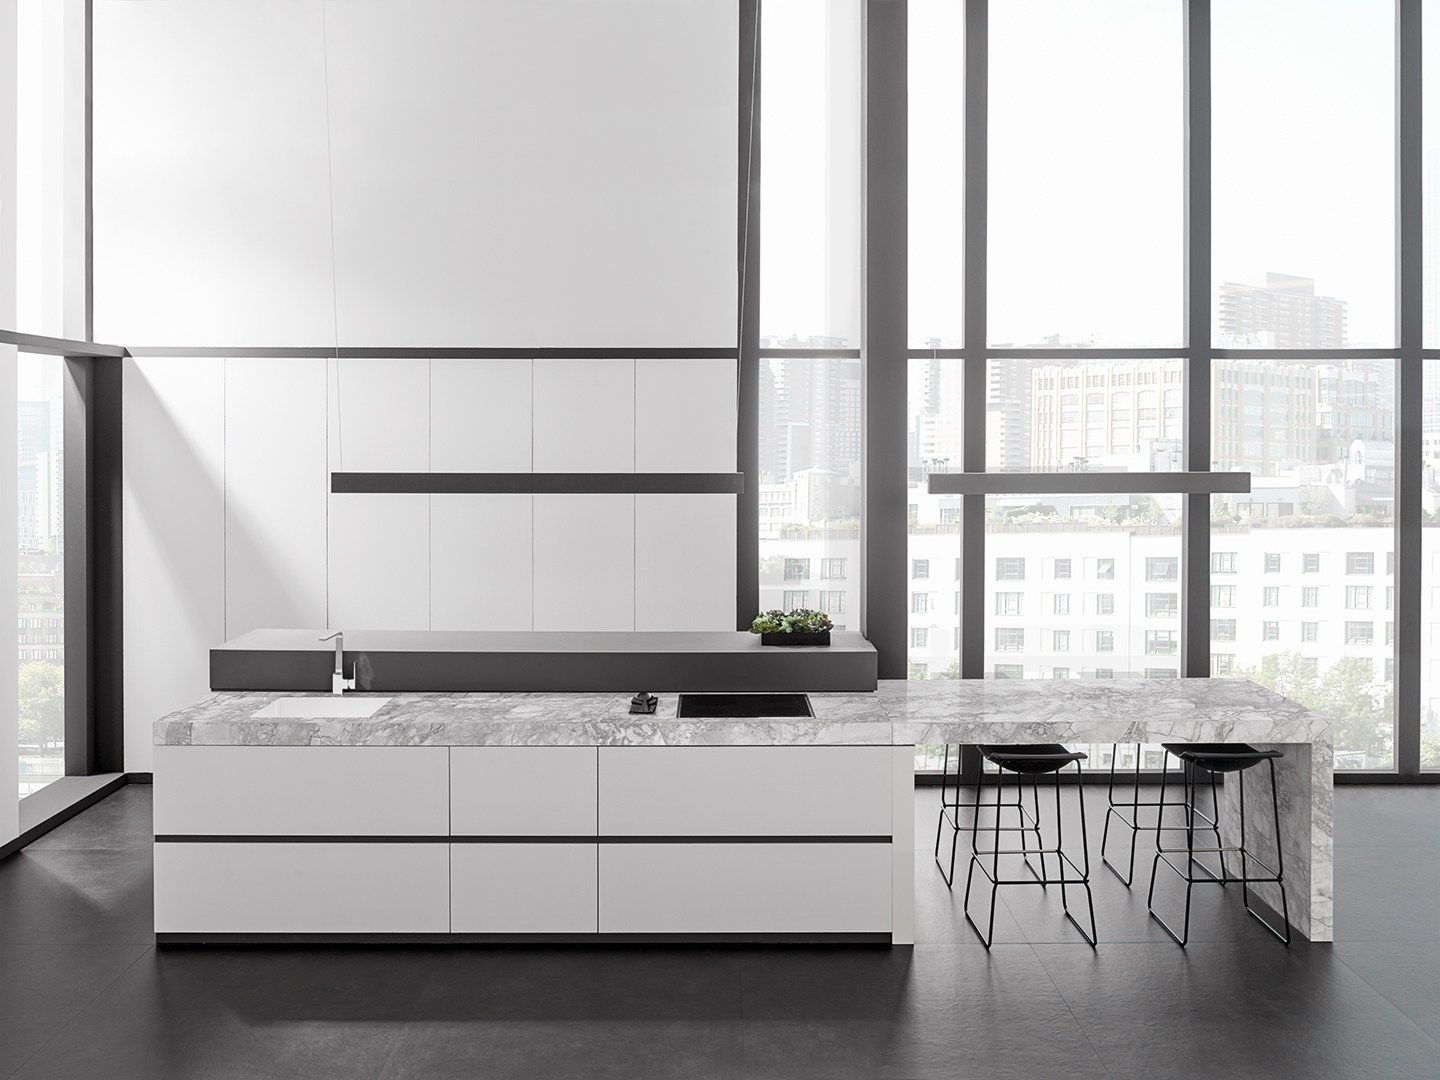 Kitchen Tiles Catalogue download the catalogue and request prices of xlight premium kala